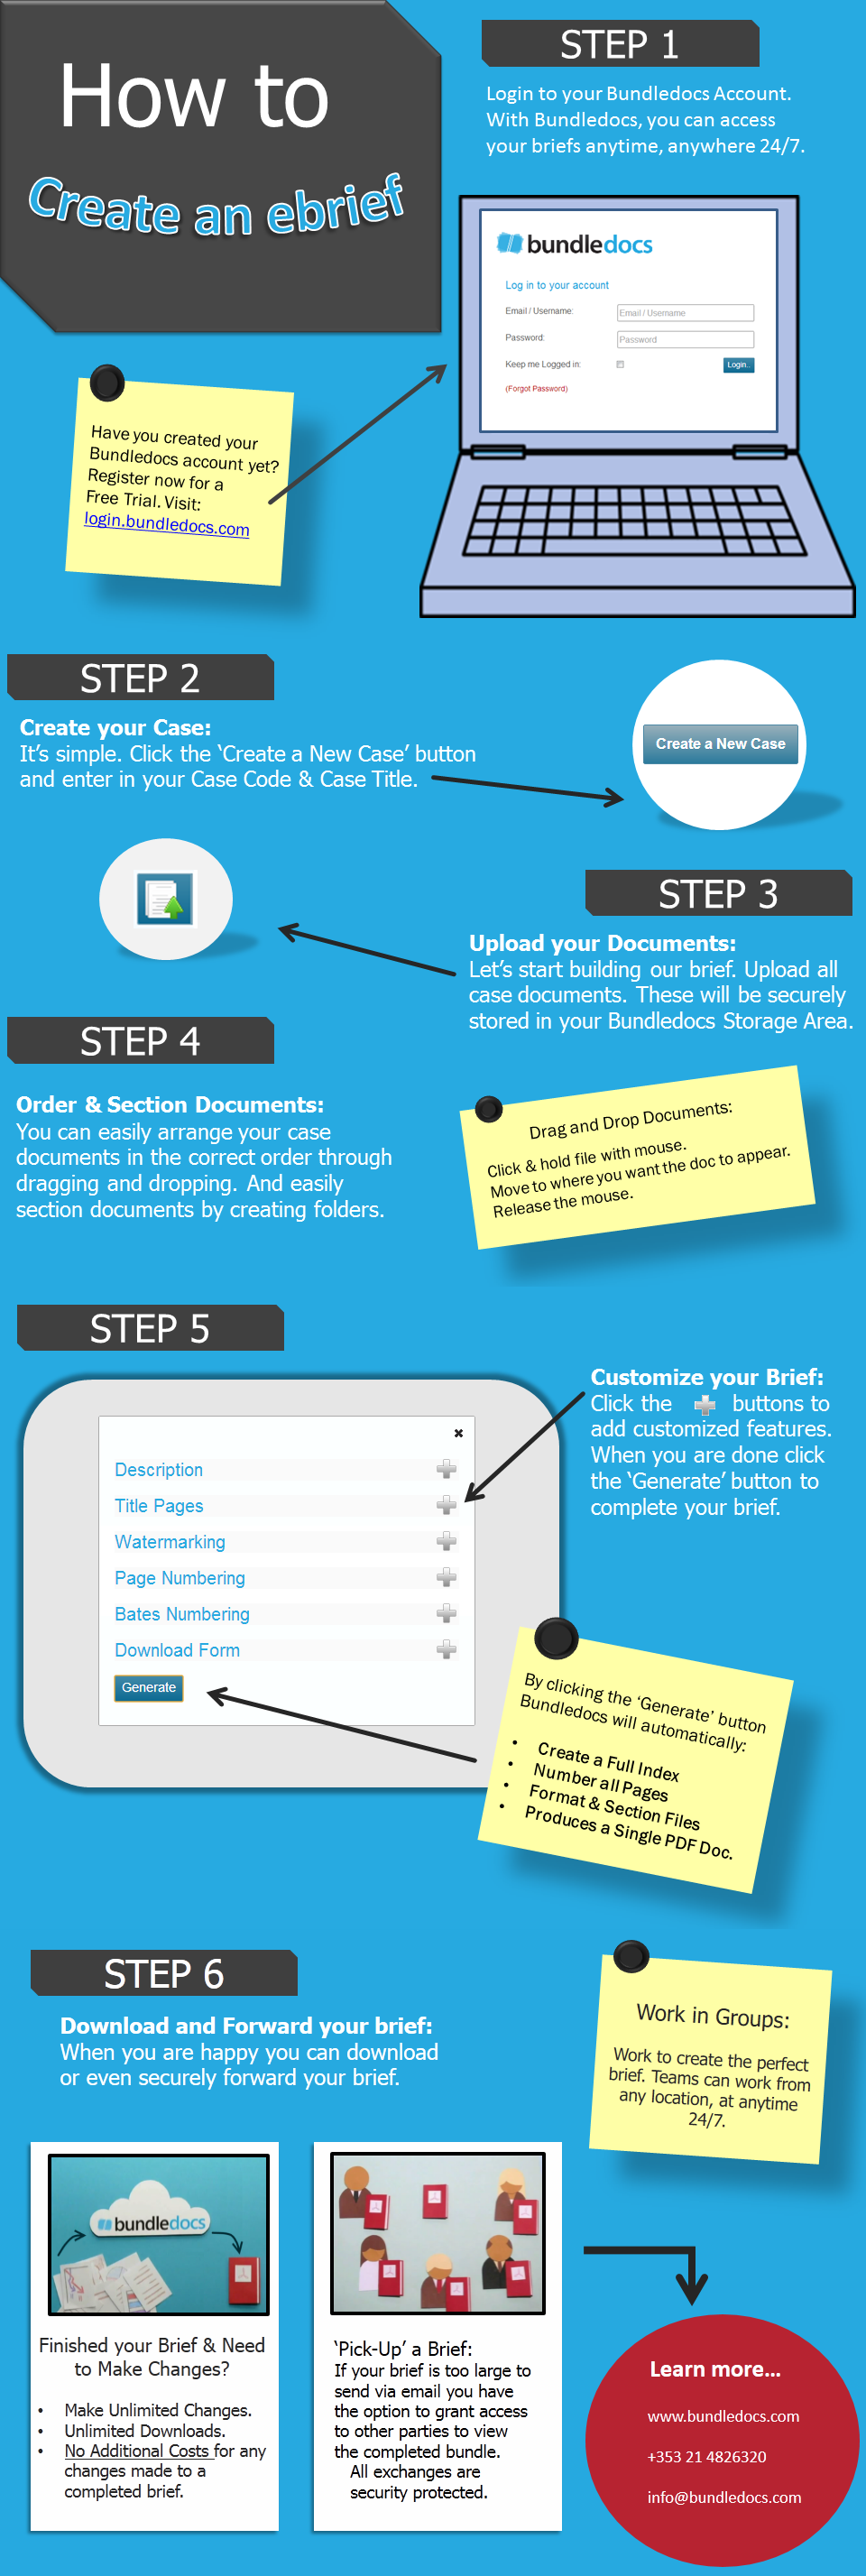 Bundledocs_how_to_create_an_ebrief_infographic UPDATED.png